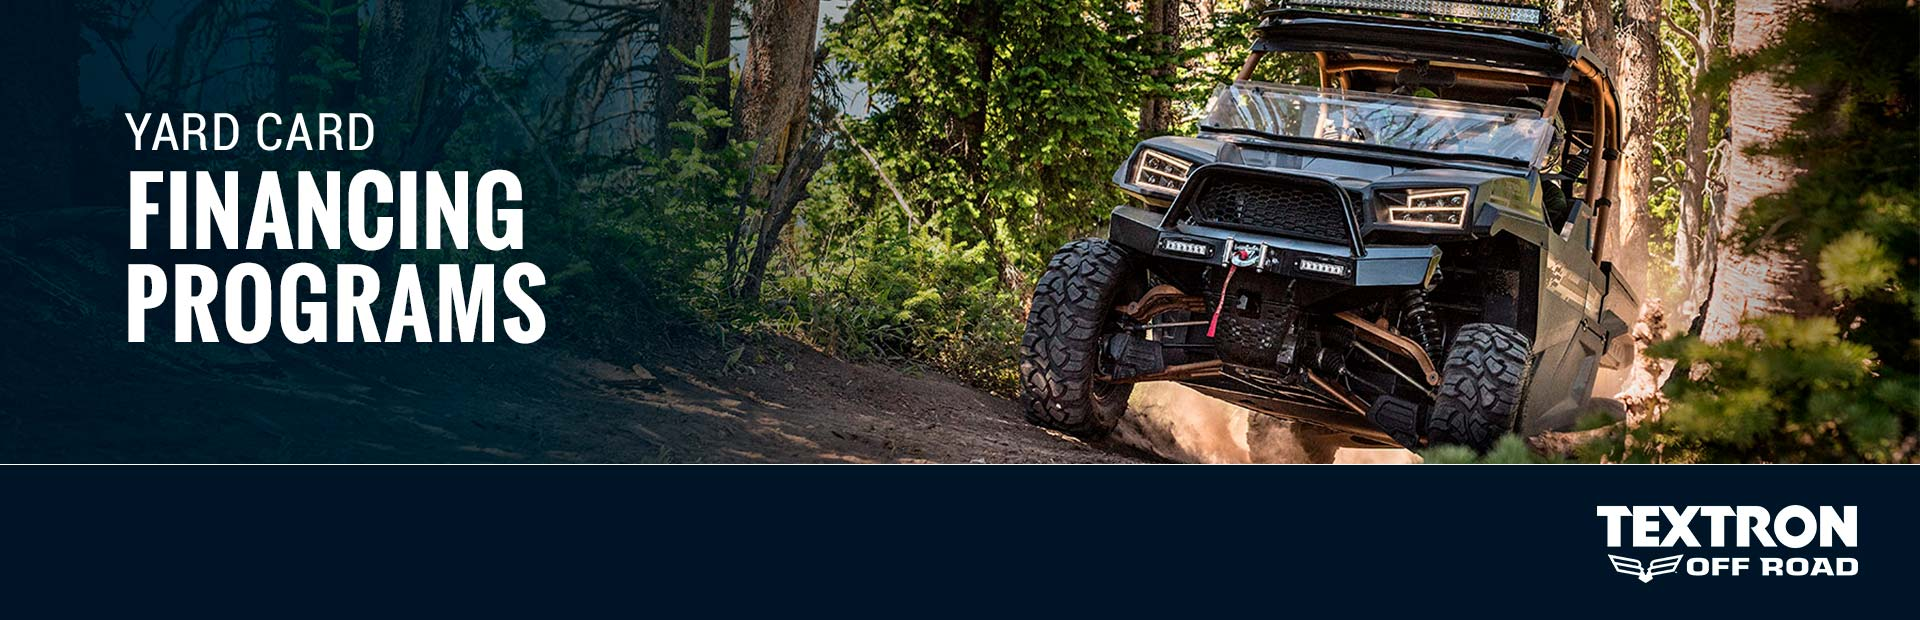 Textron Off Road: Textron Off Road – Yard Card Financing Programs